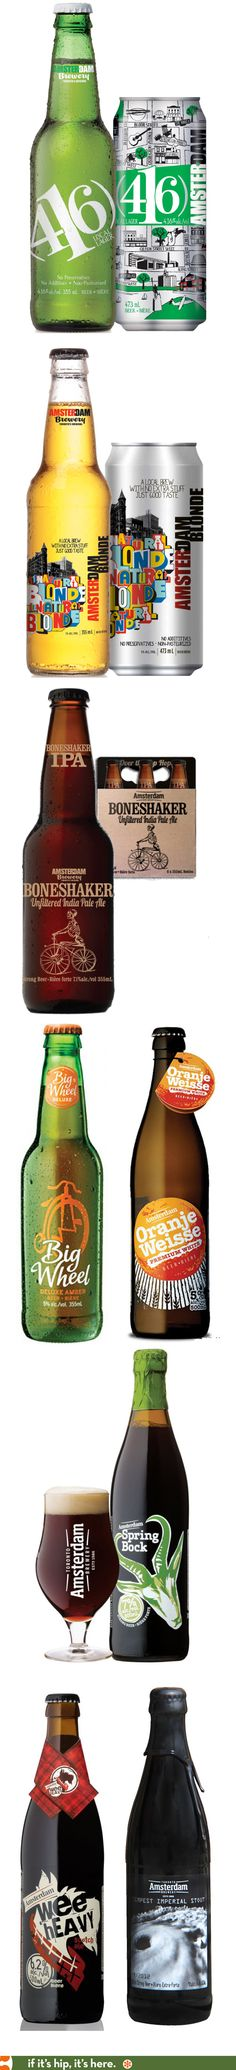 Amsterdam Brewery's best bottle and can designs.